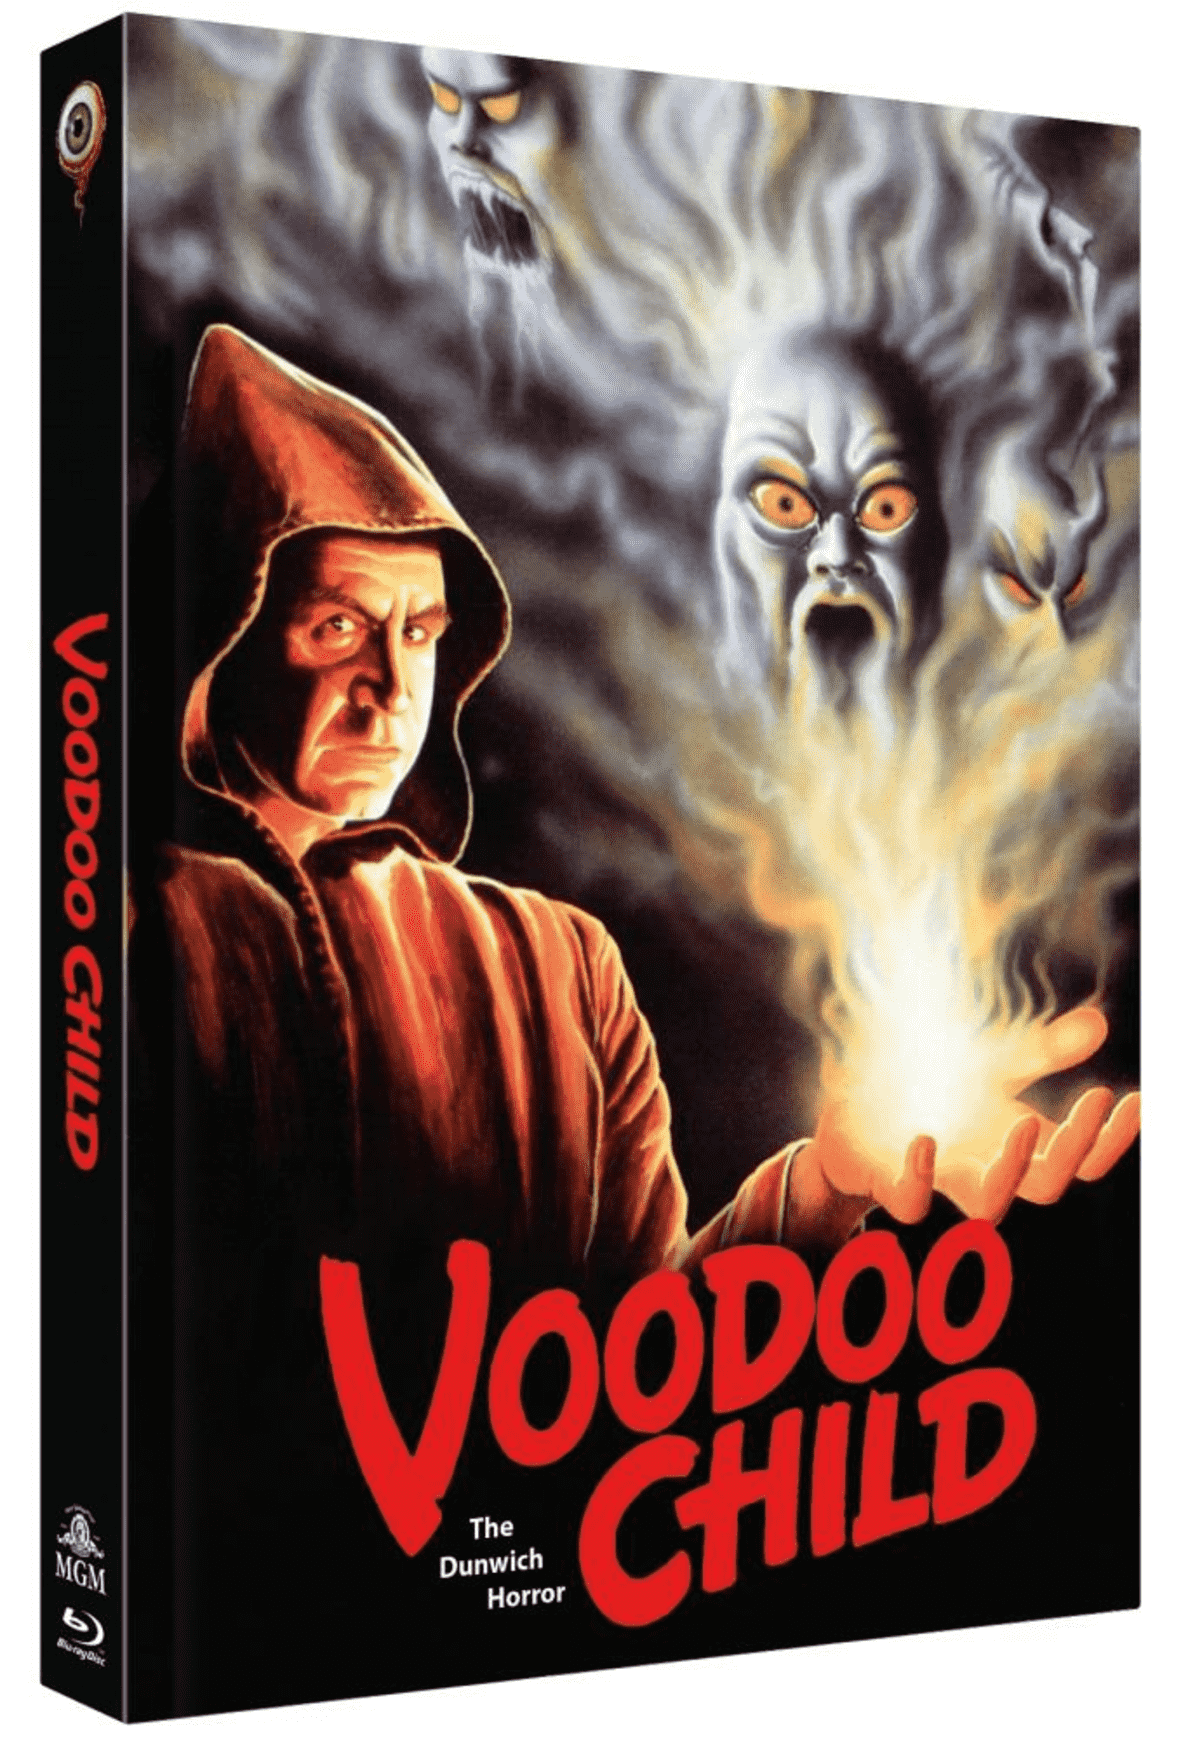 The Dunwich Horror (a.k.a Voodoo Child) - (Blu-ray + DVD)